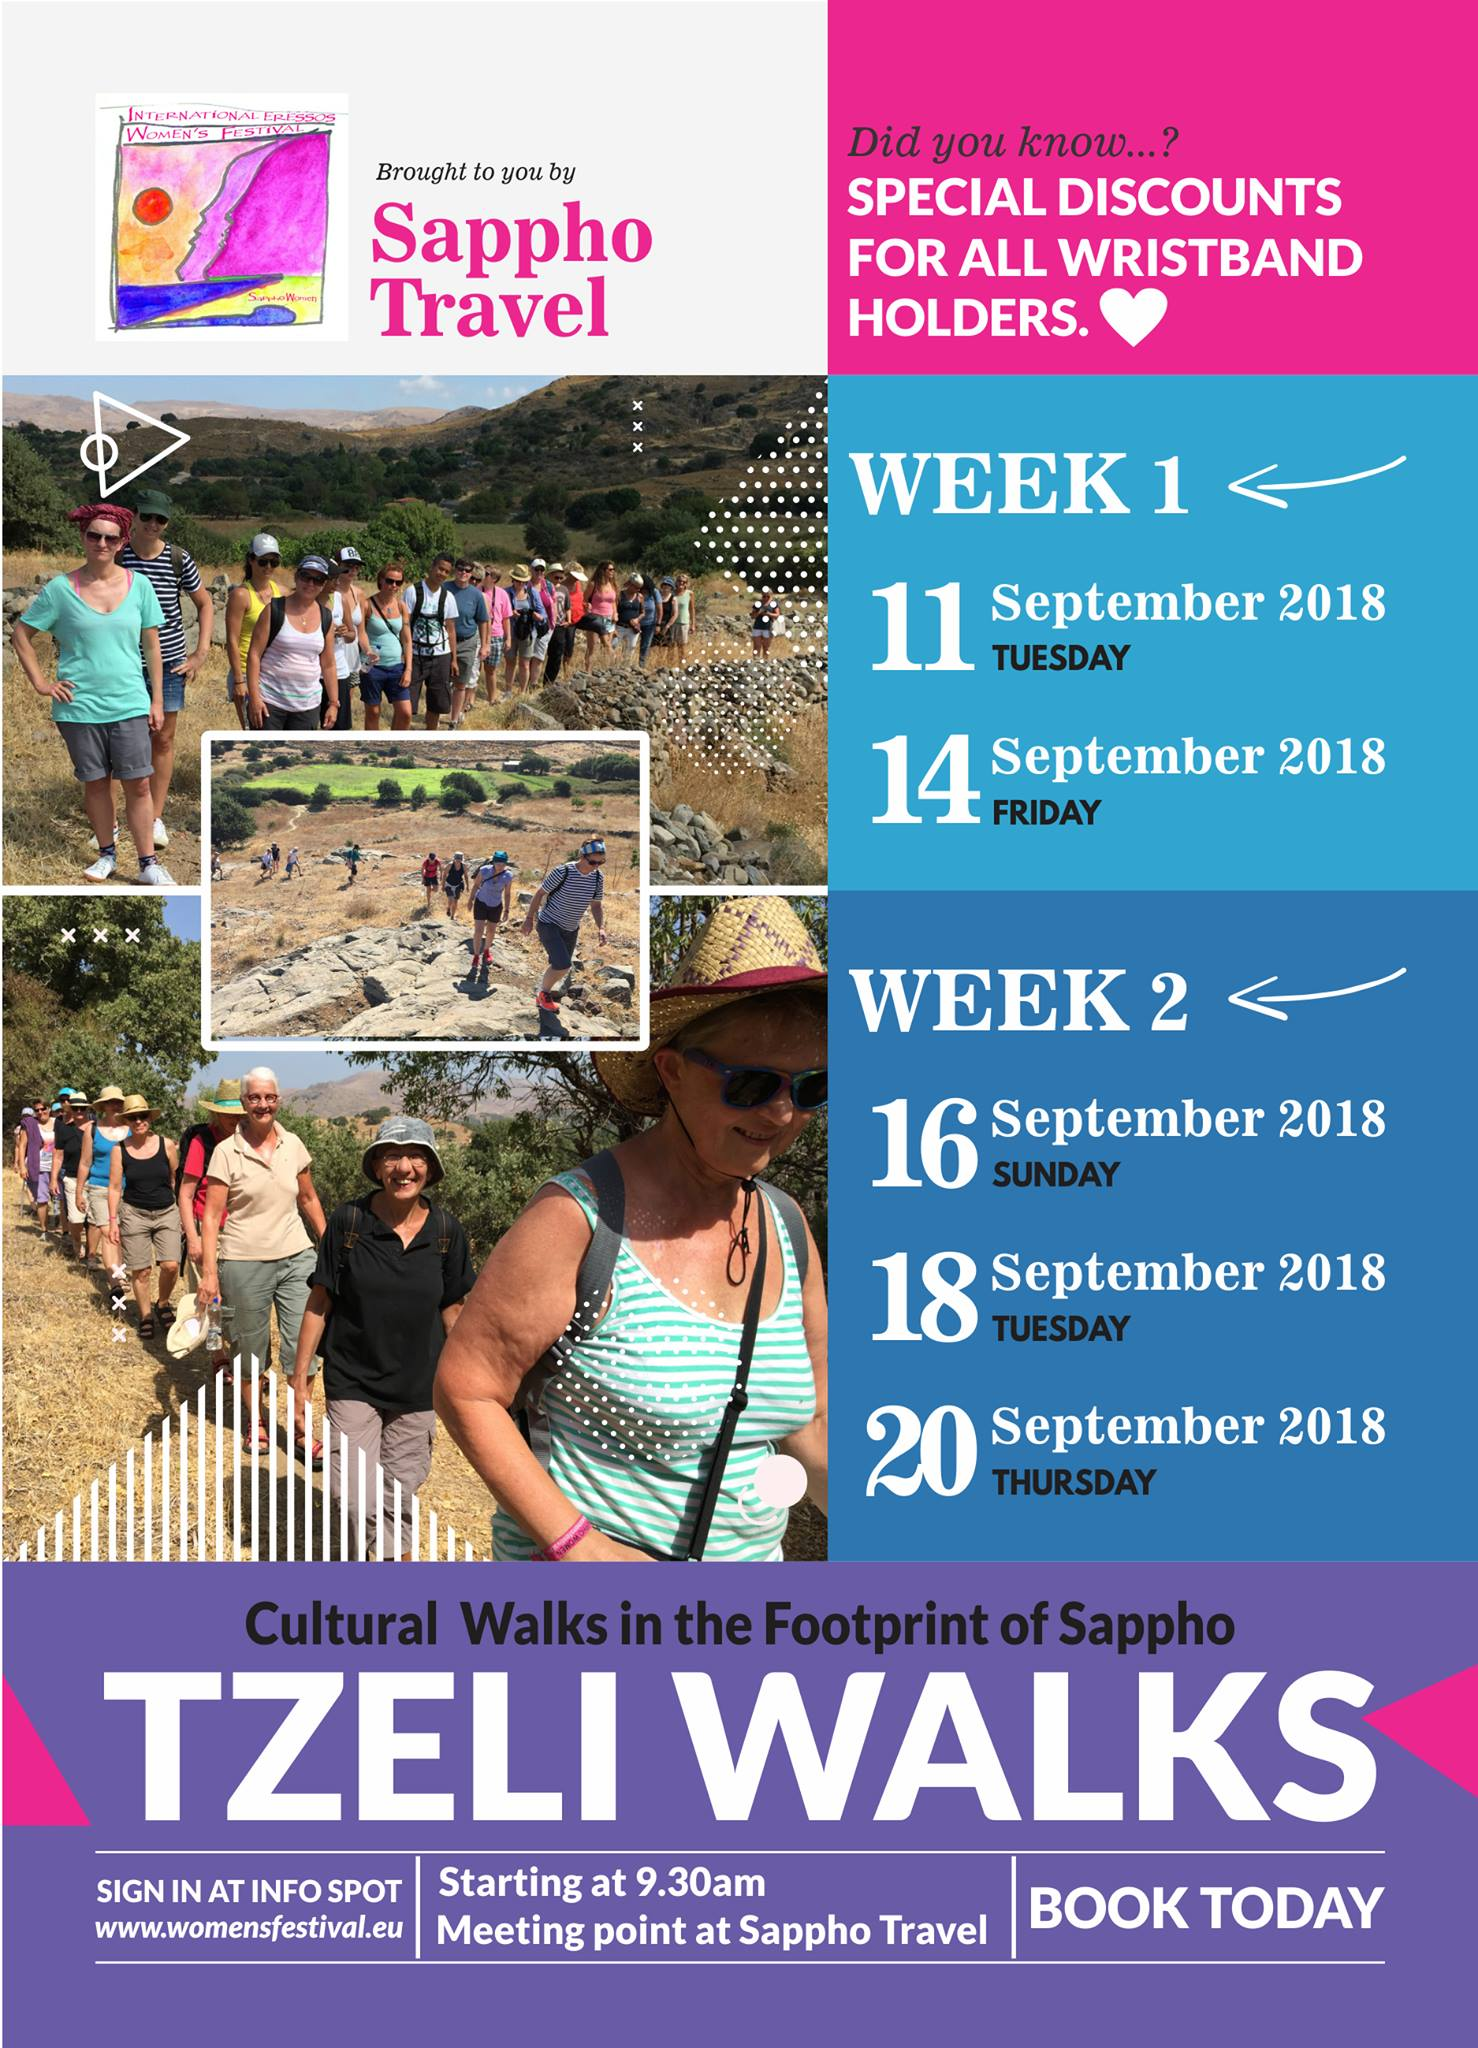 cultural walks with Tzeli